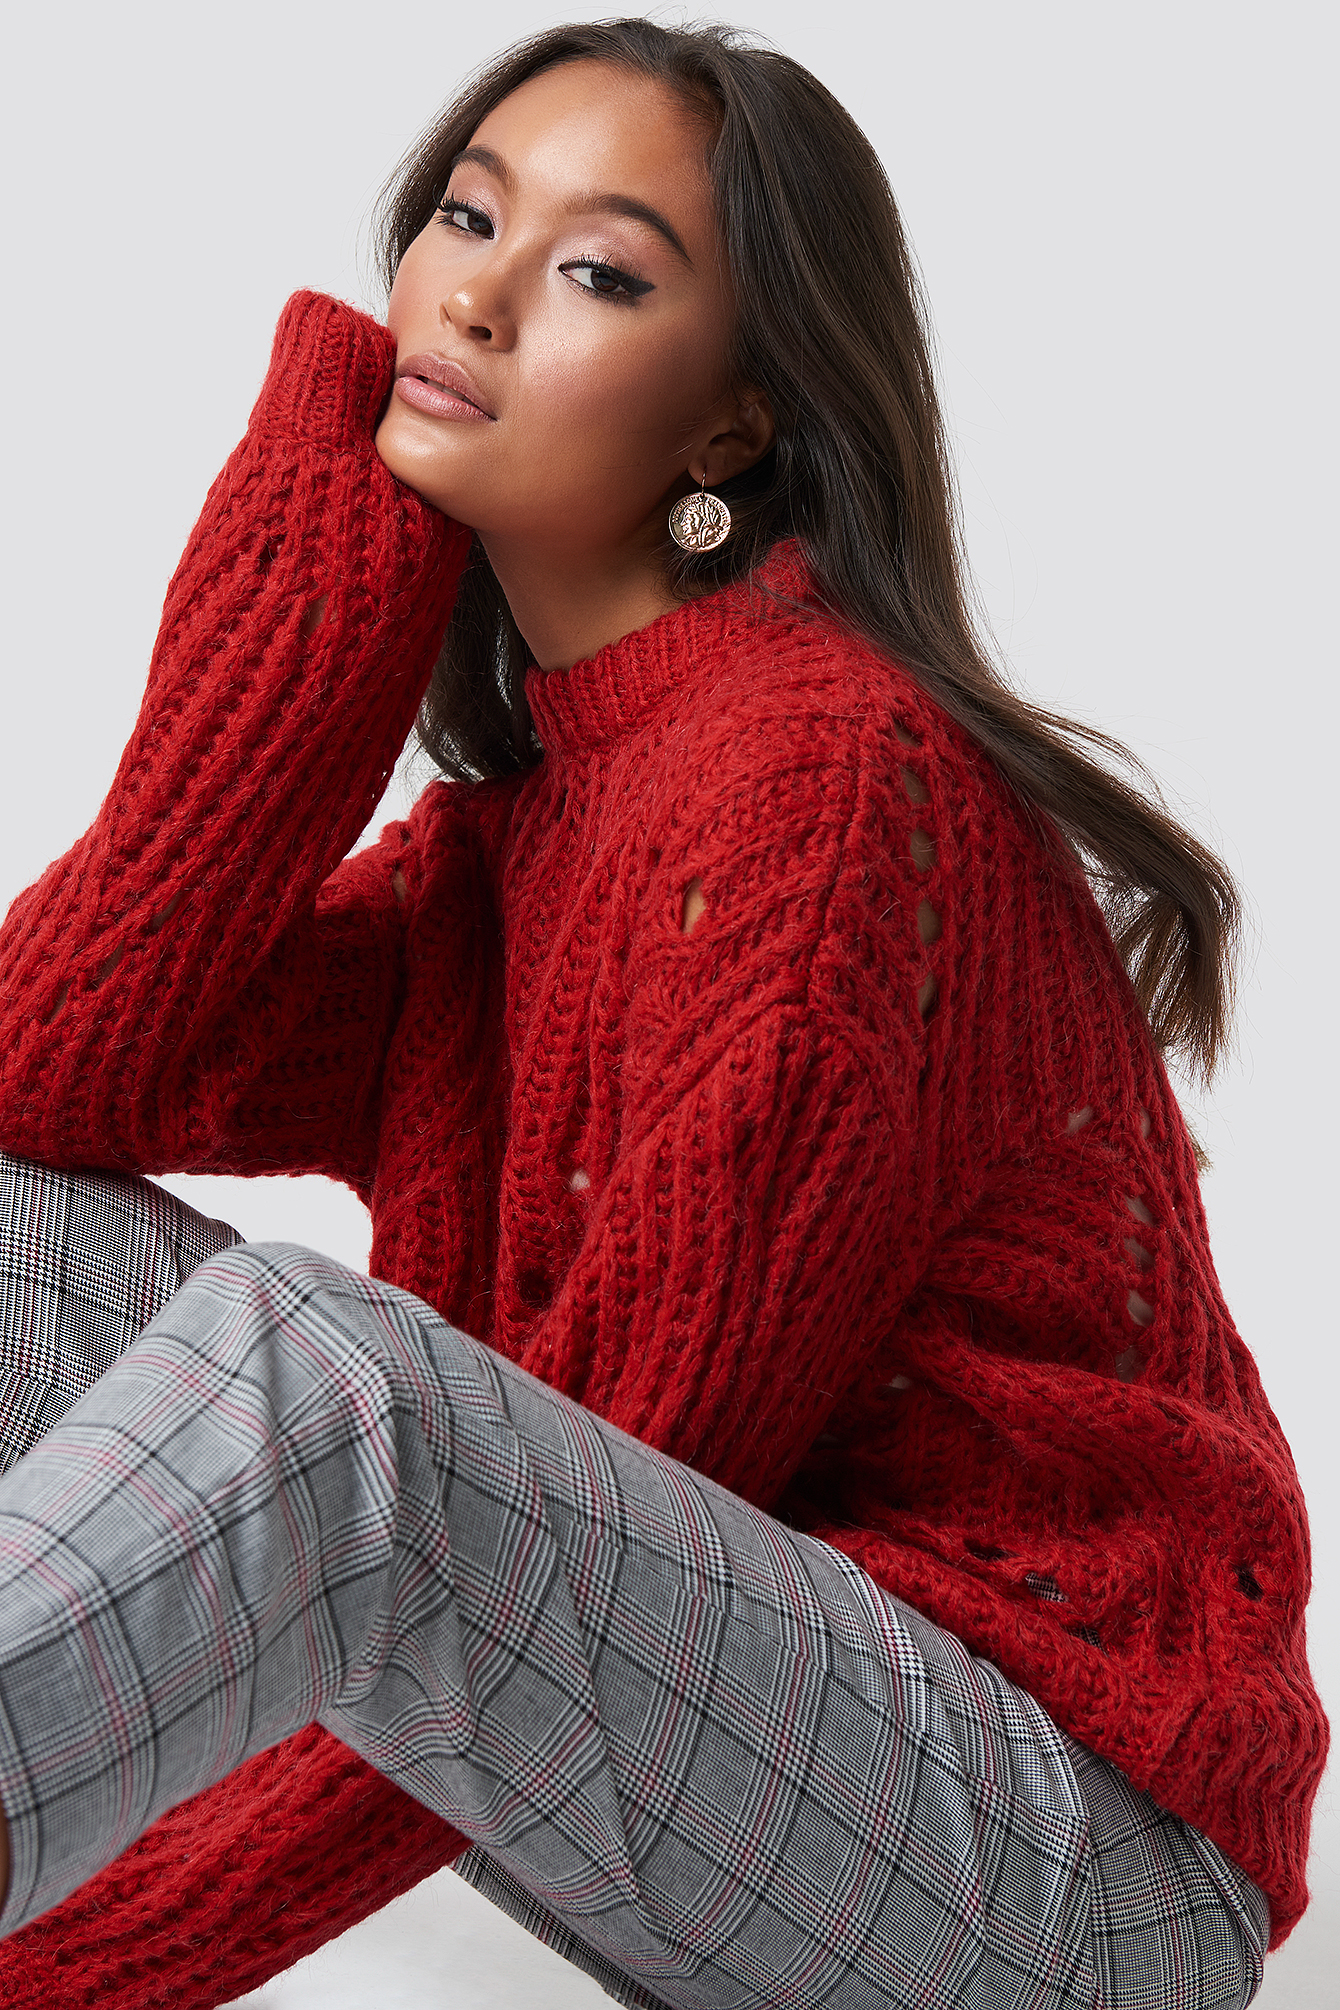 MOVES Fiolina Sweater - Red